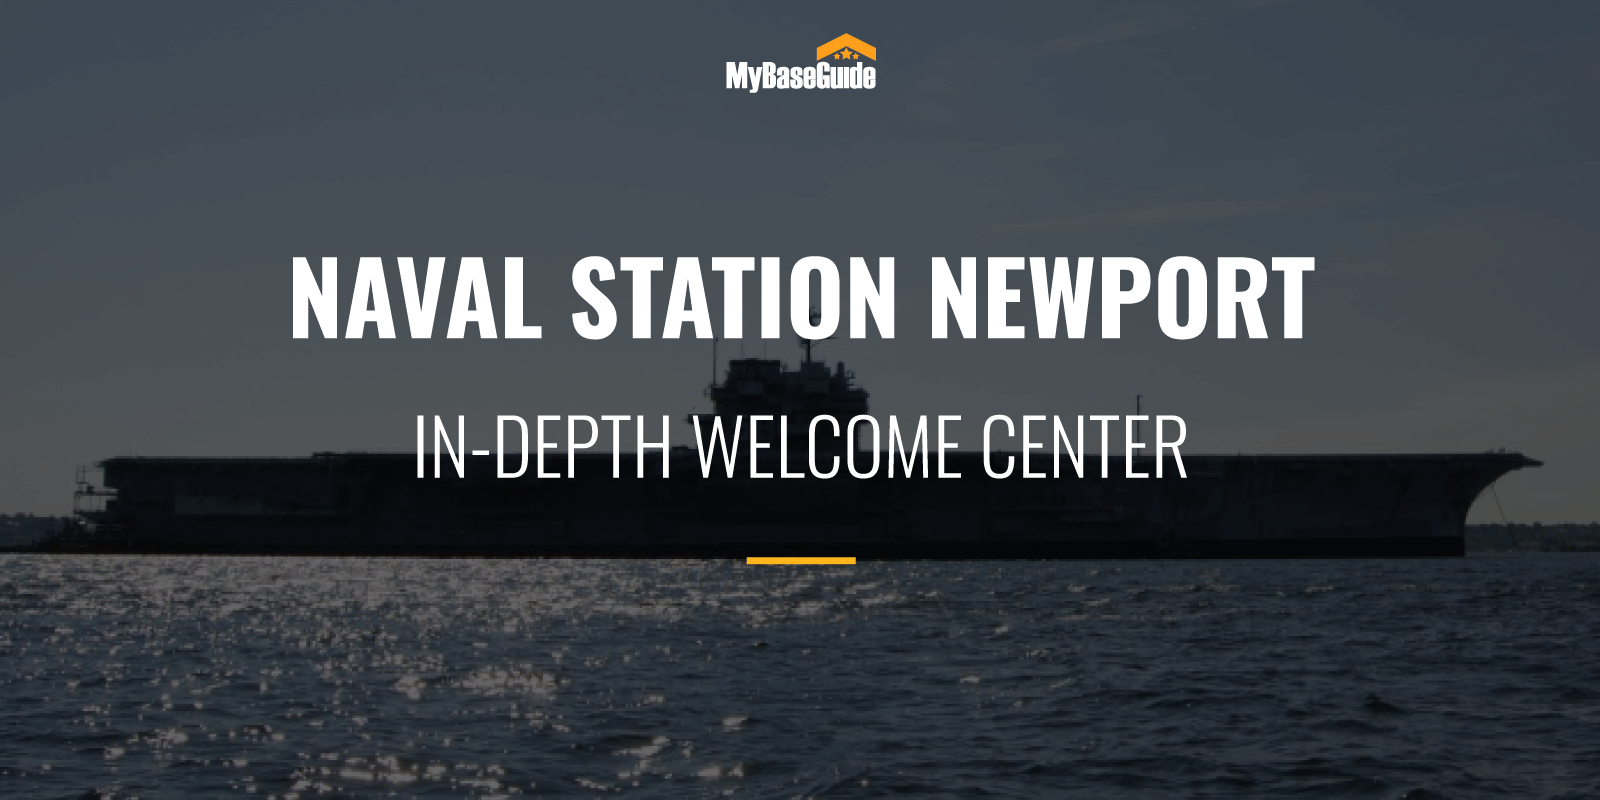 Naval Station Newport: In-Depth Welcome Center